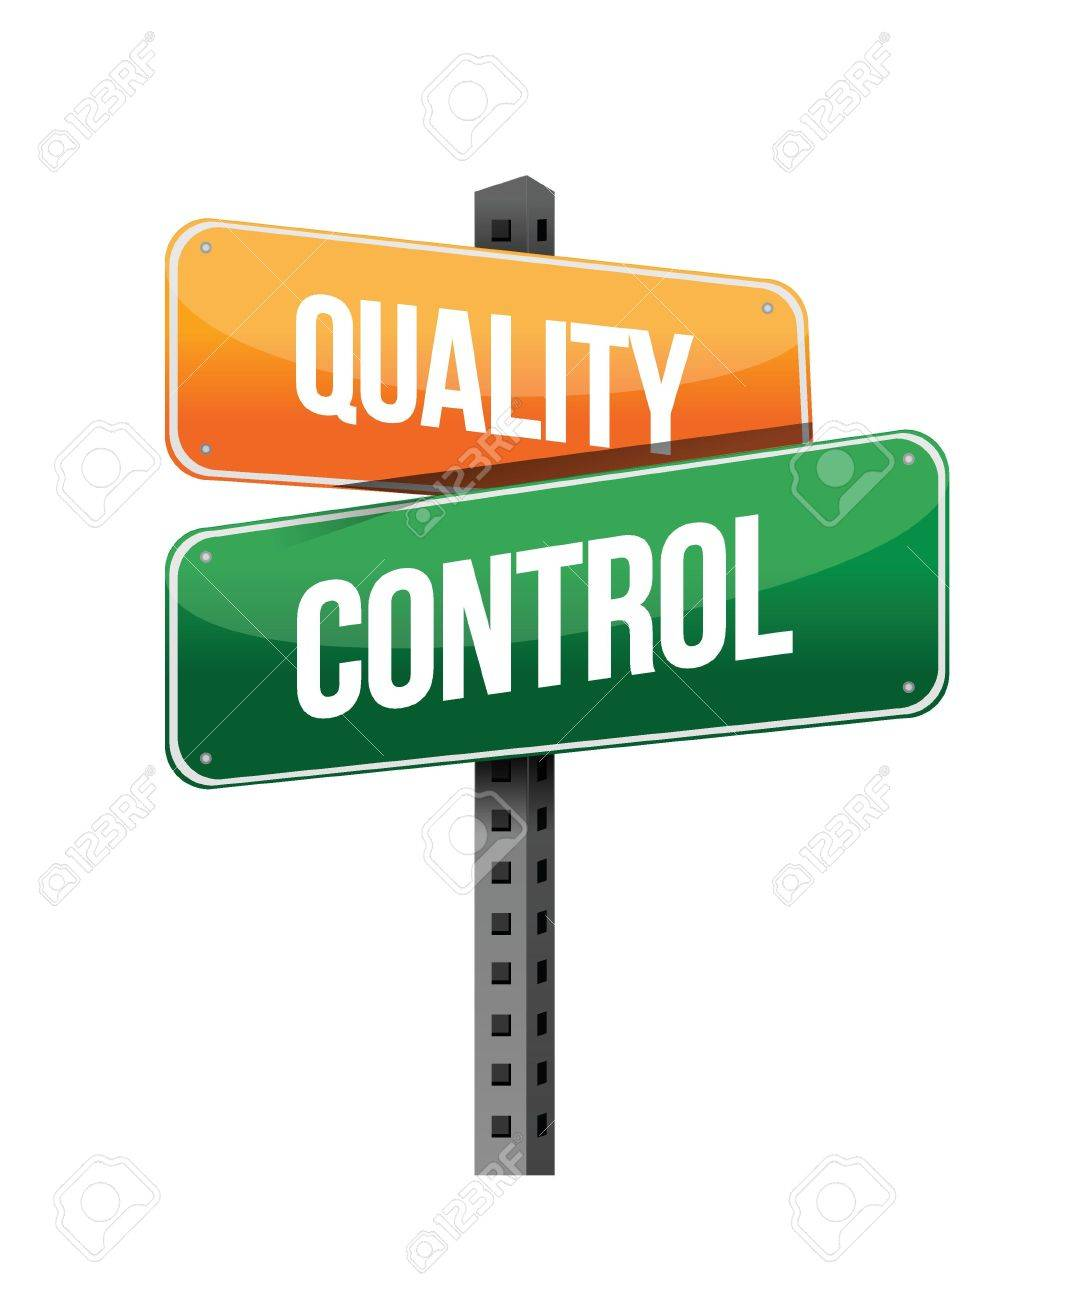 quality control sign illustration design over a white background.